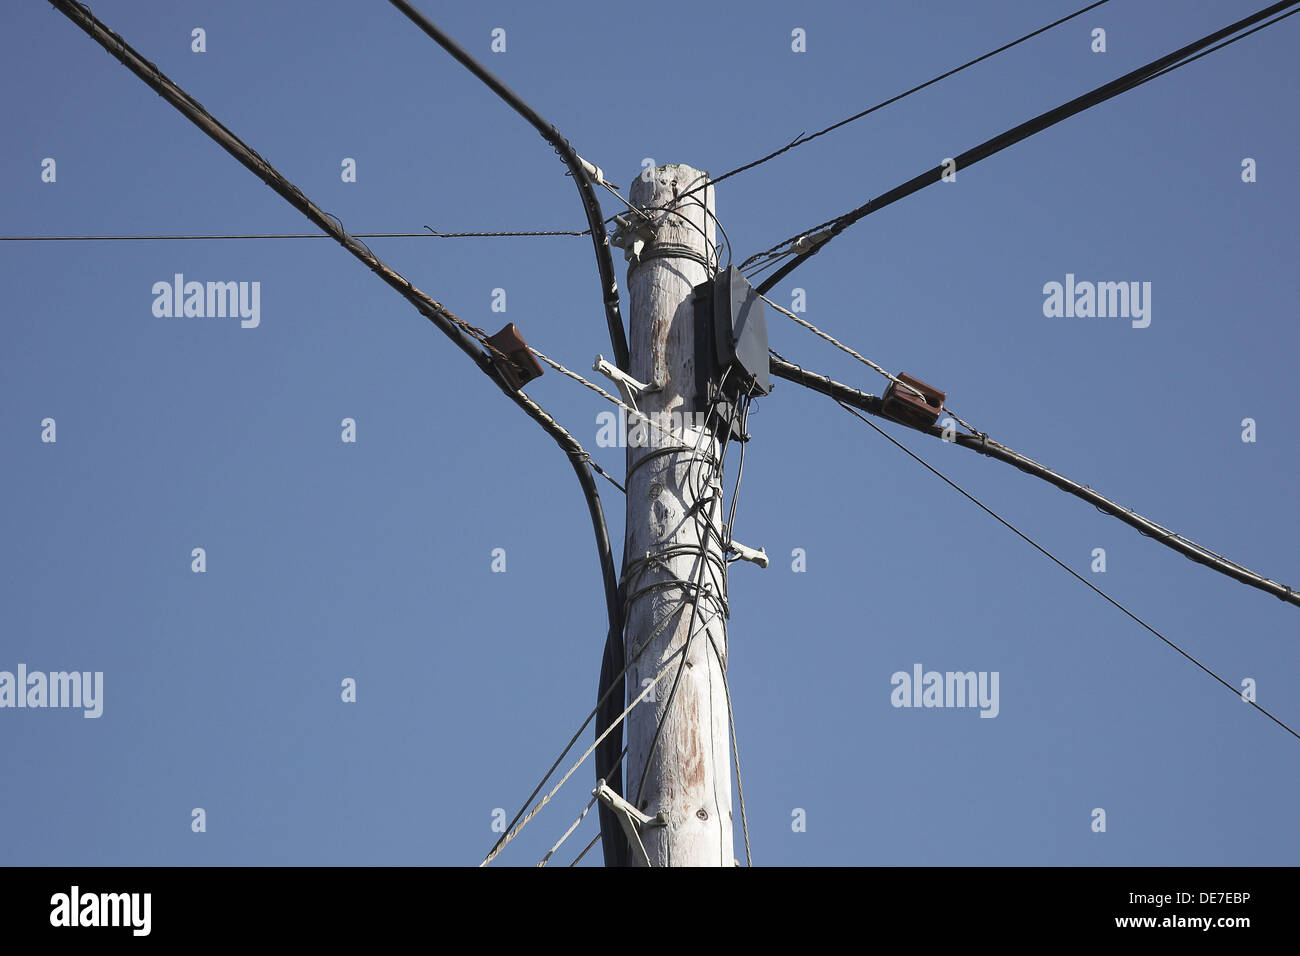 Telegraph pole with linking cables Stock Photo